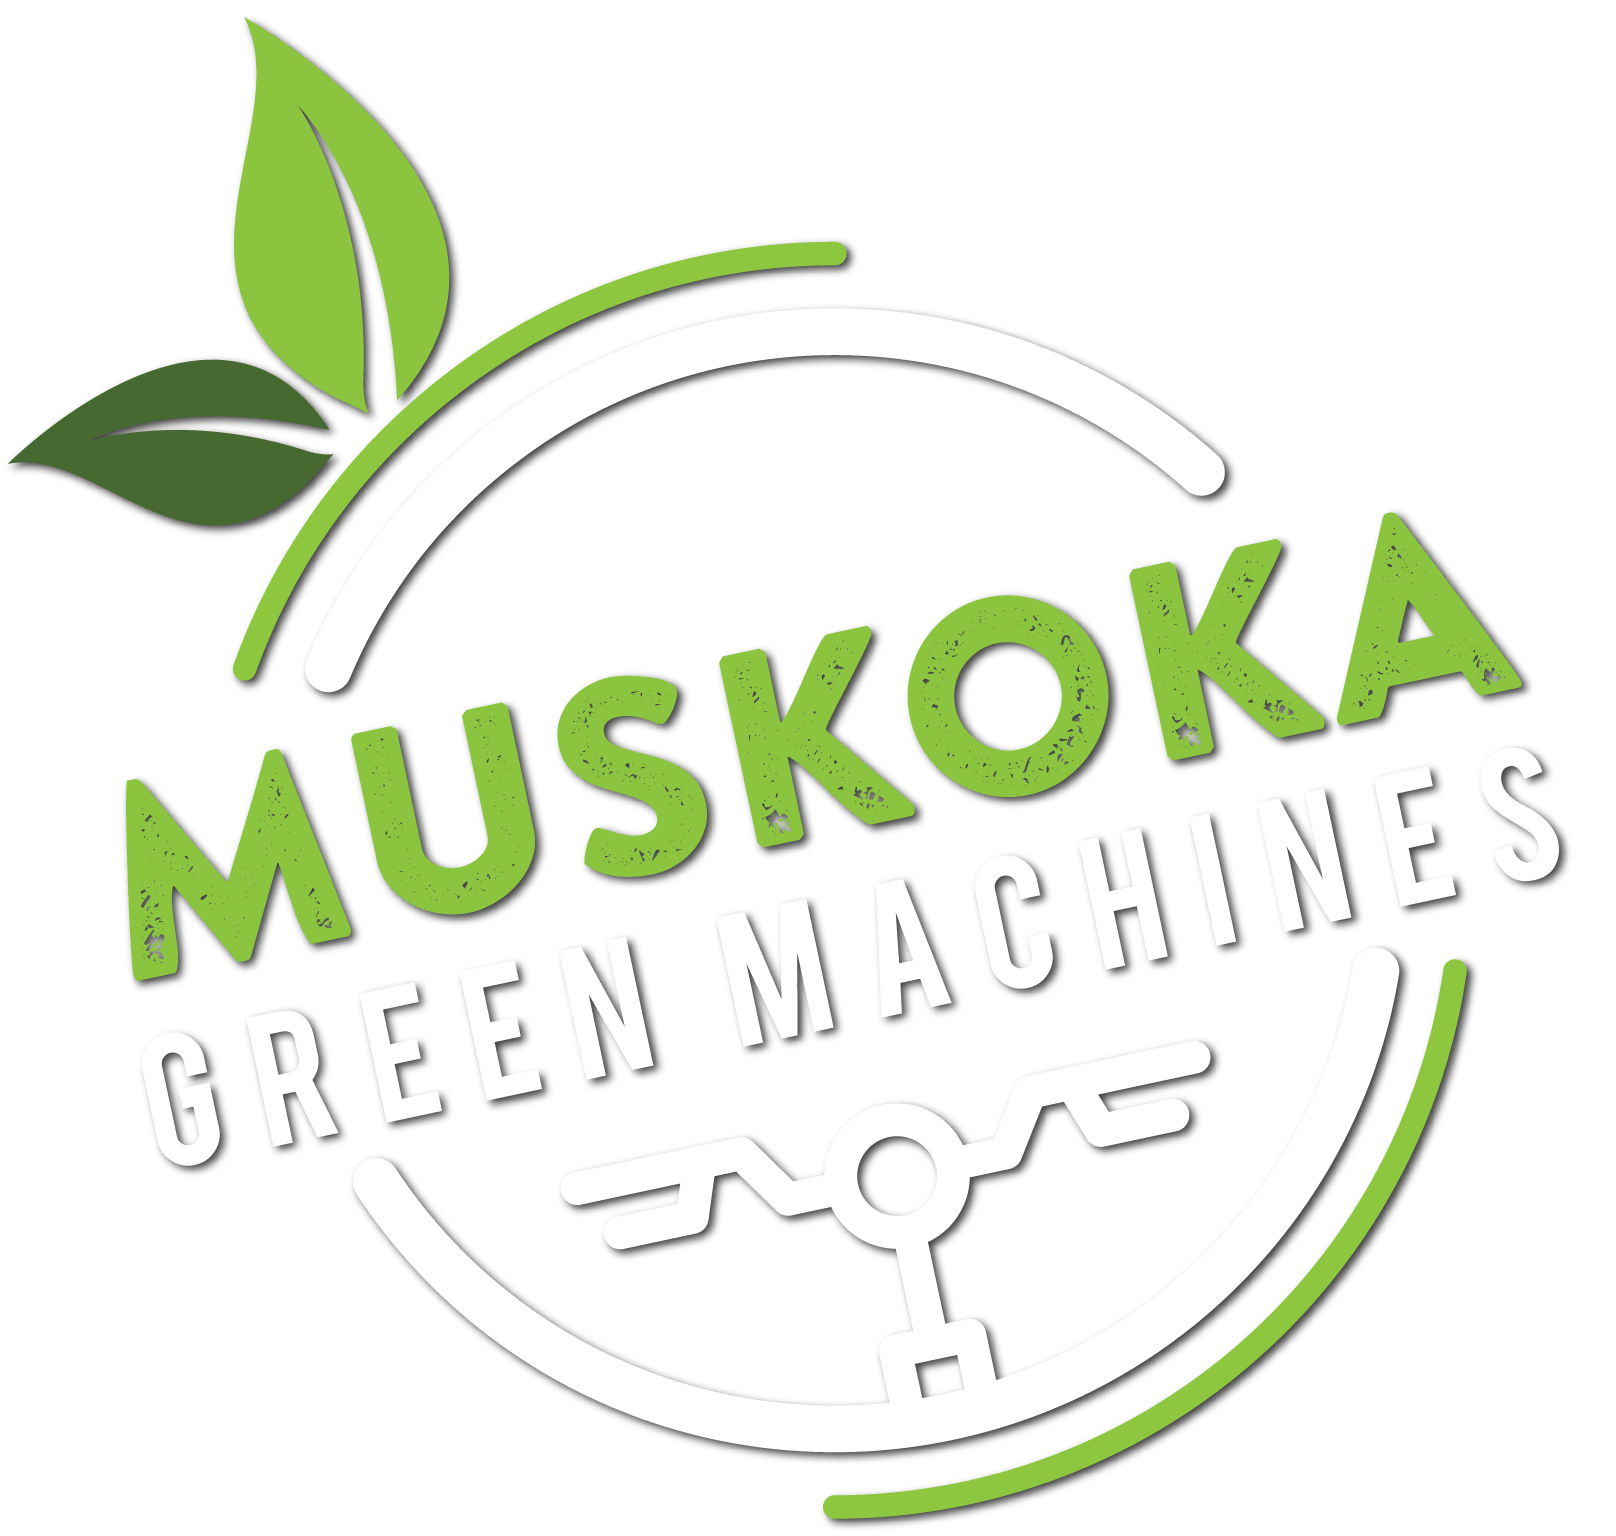 Muskoka Green Machines